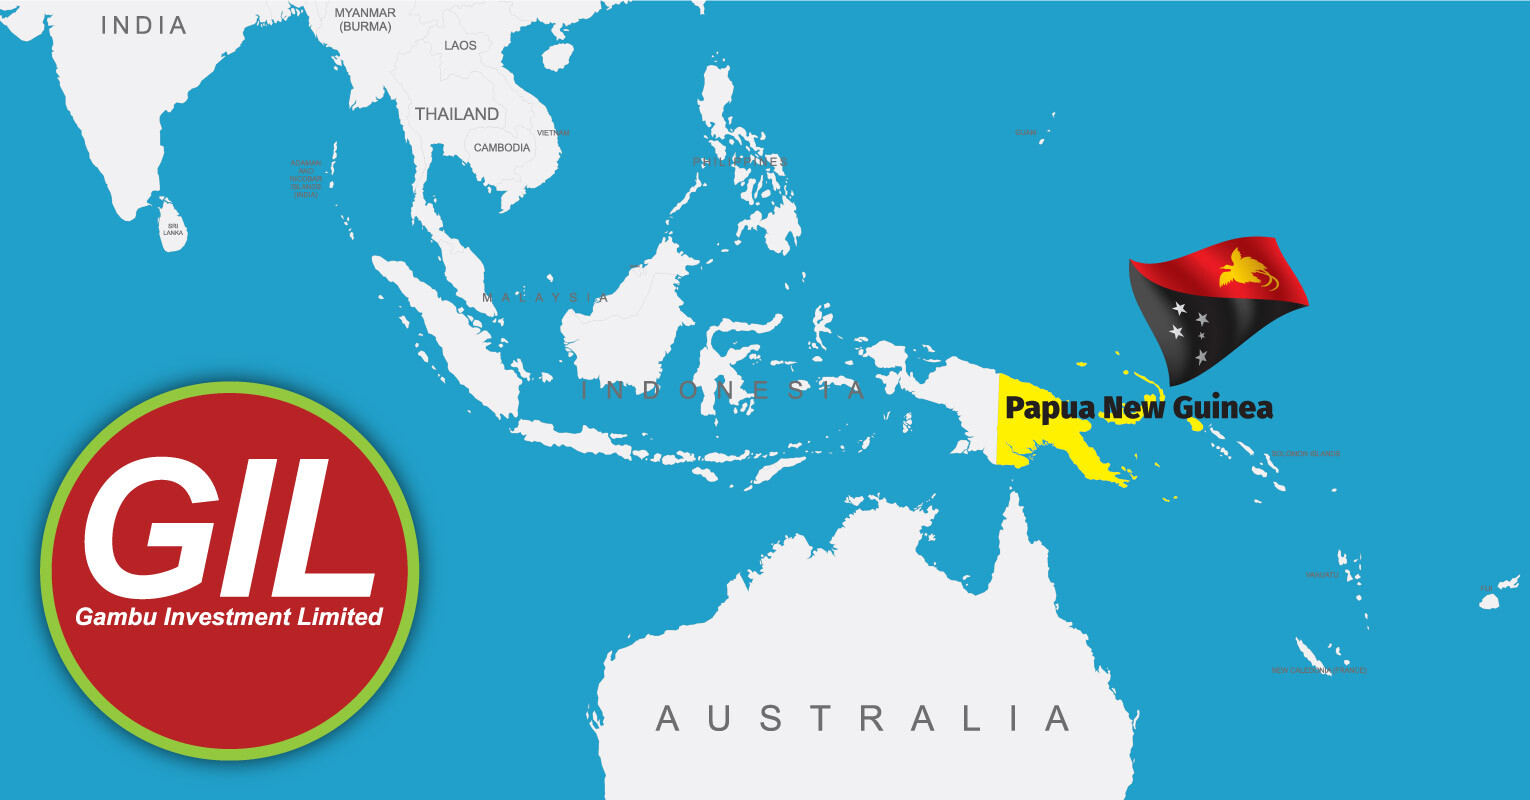 New member representing Papua New Guinea – Gambu Investment Limited